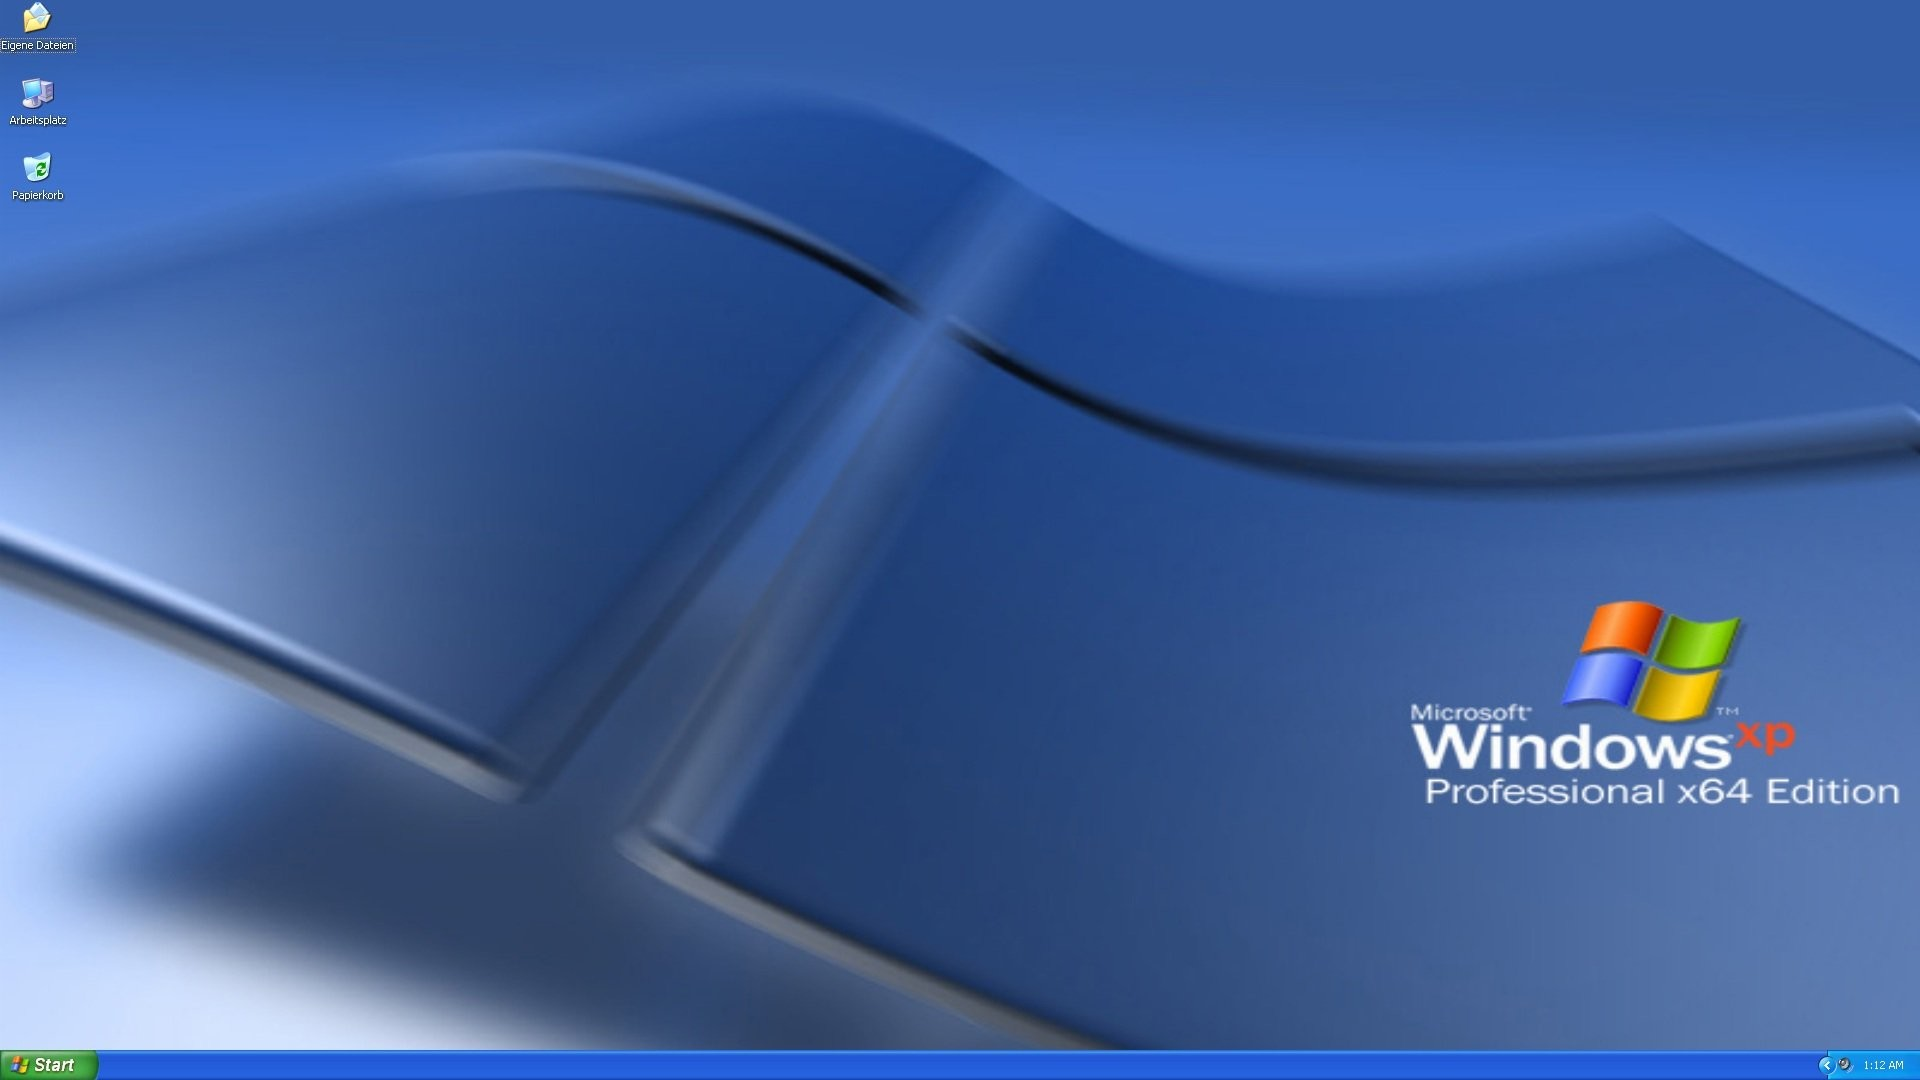 Windows Xp Professional Wallpaper 44 images 1920x1080